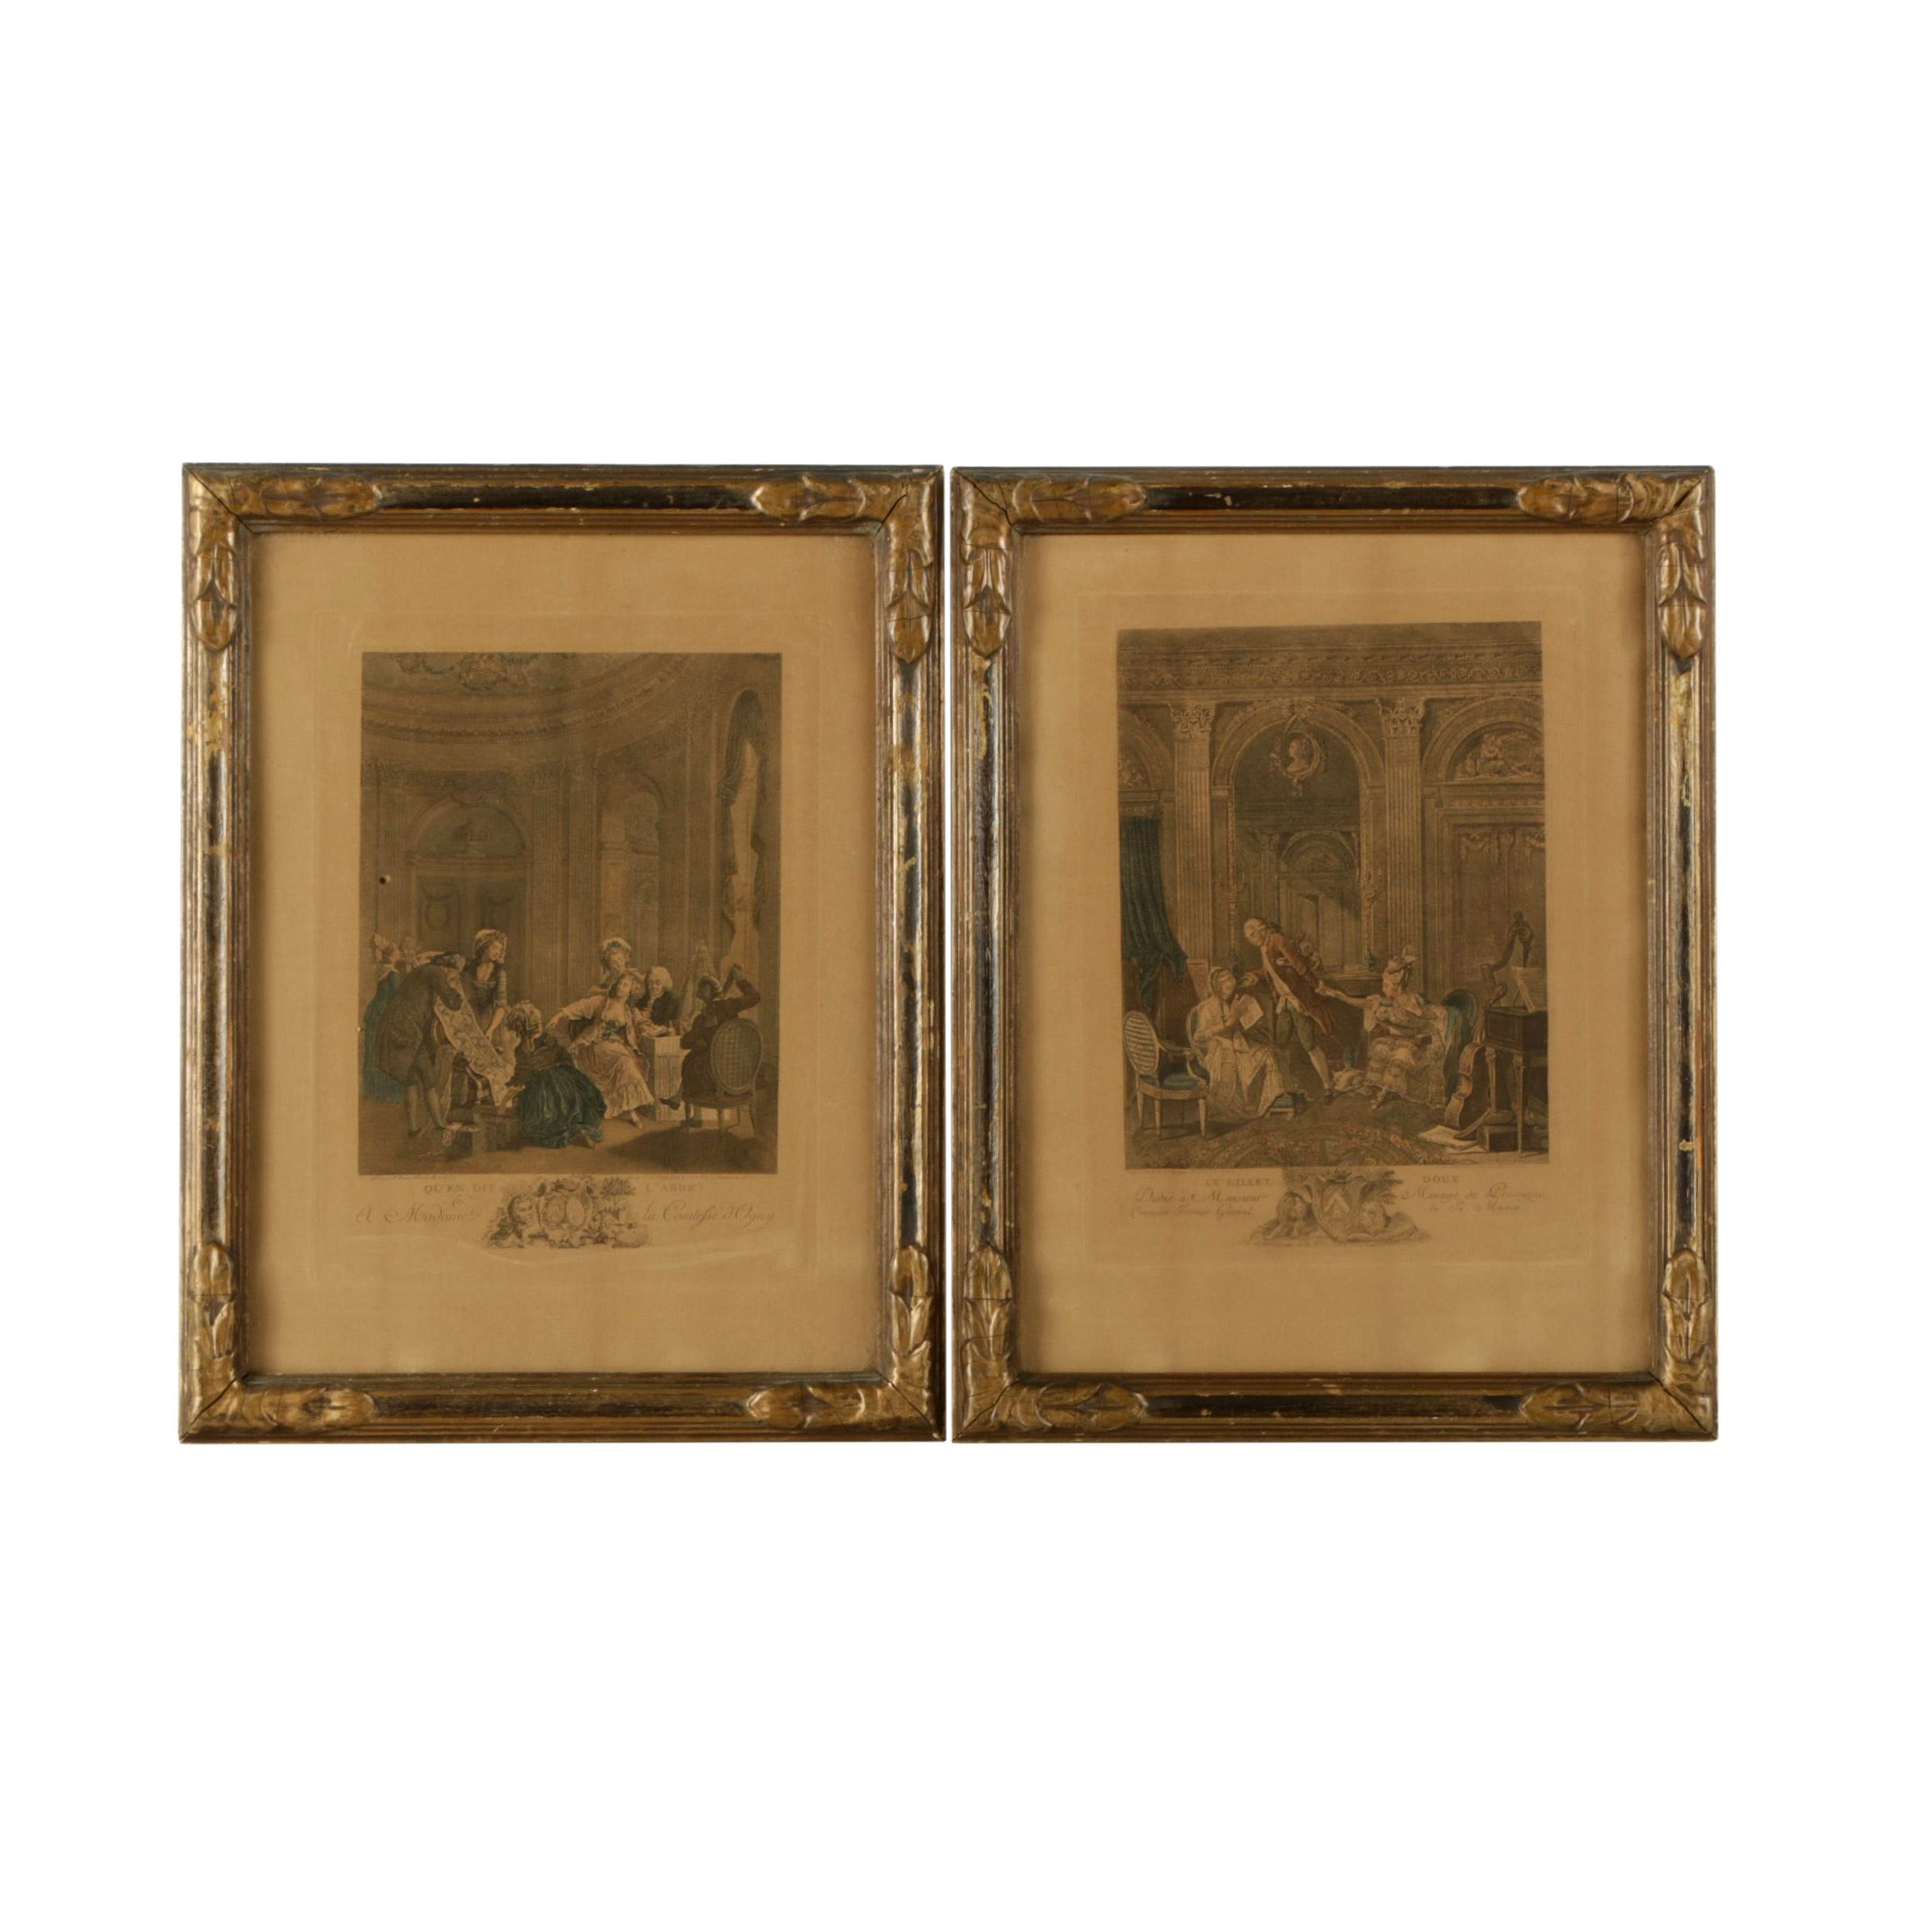 Antique Hand Colored Engravings on Paper of French Interiors